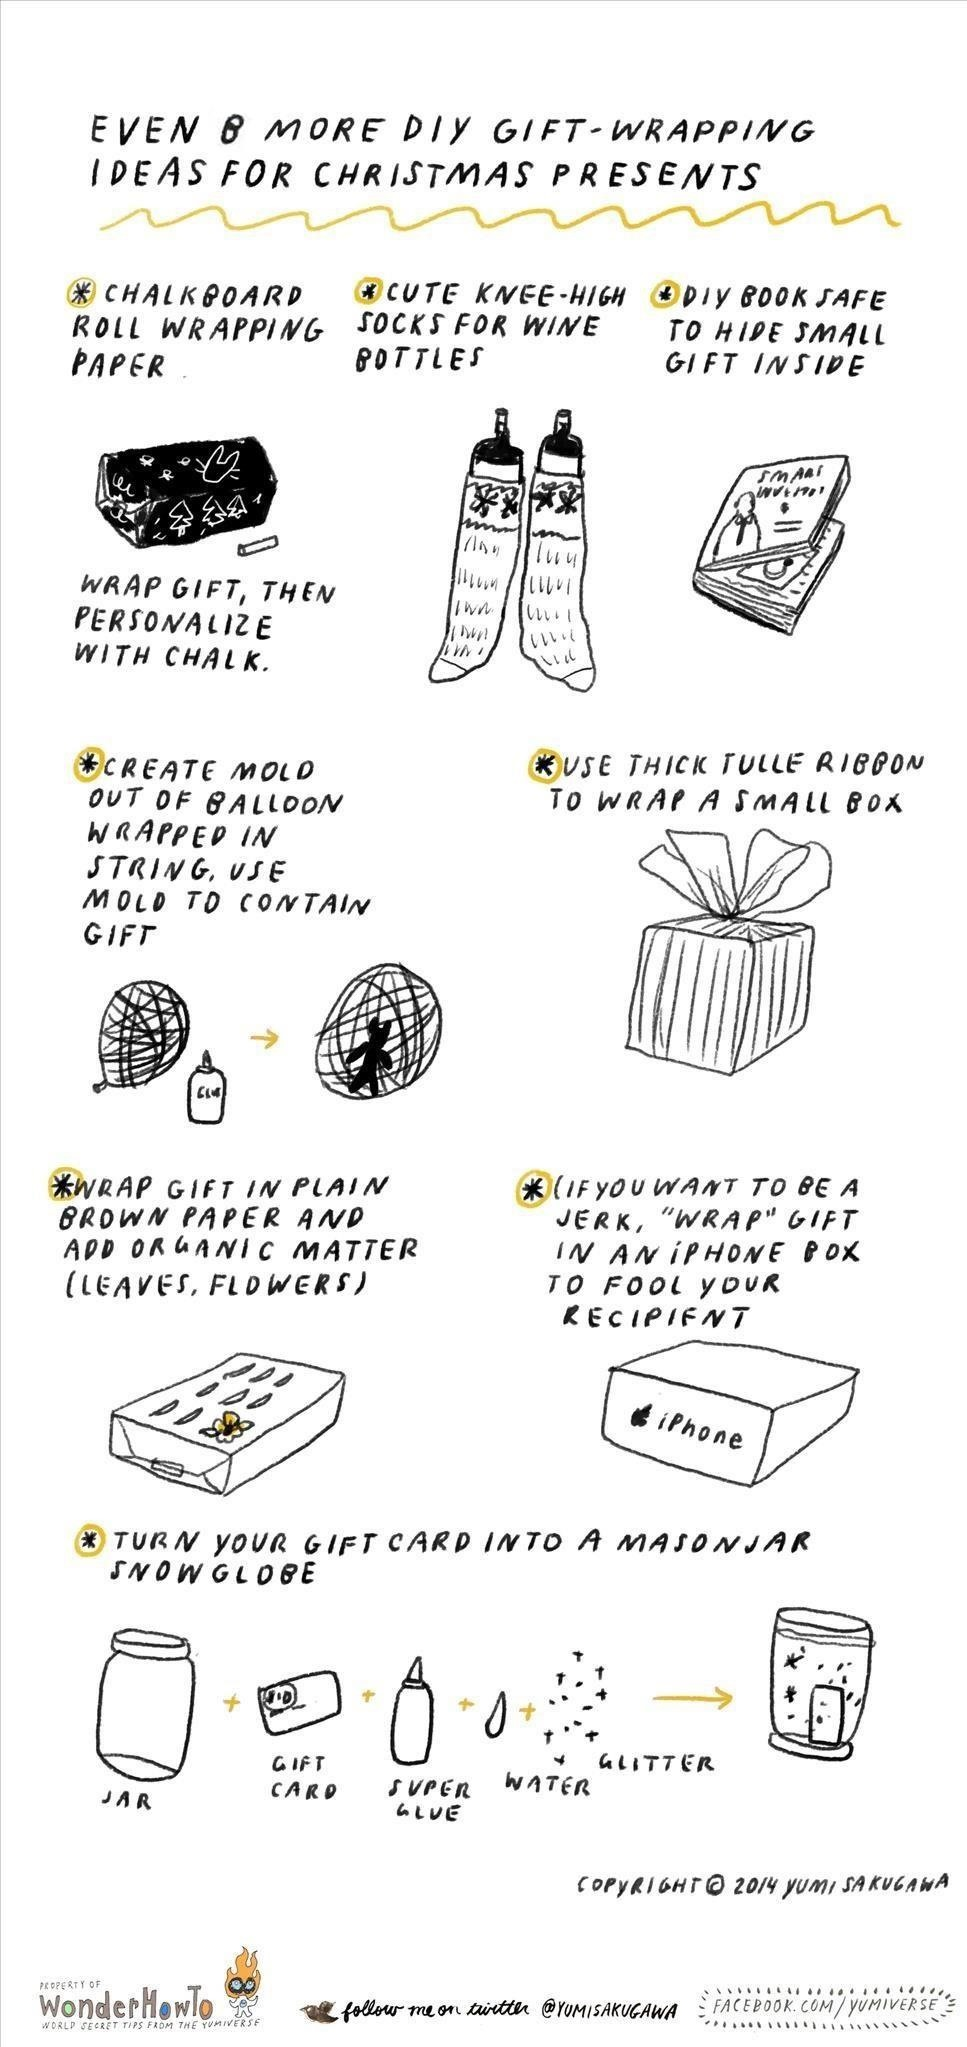 Even 8 More DIY Gift-Wrapping Ideas for Christmas Presents